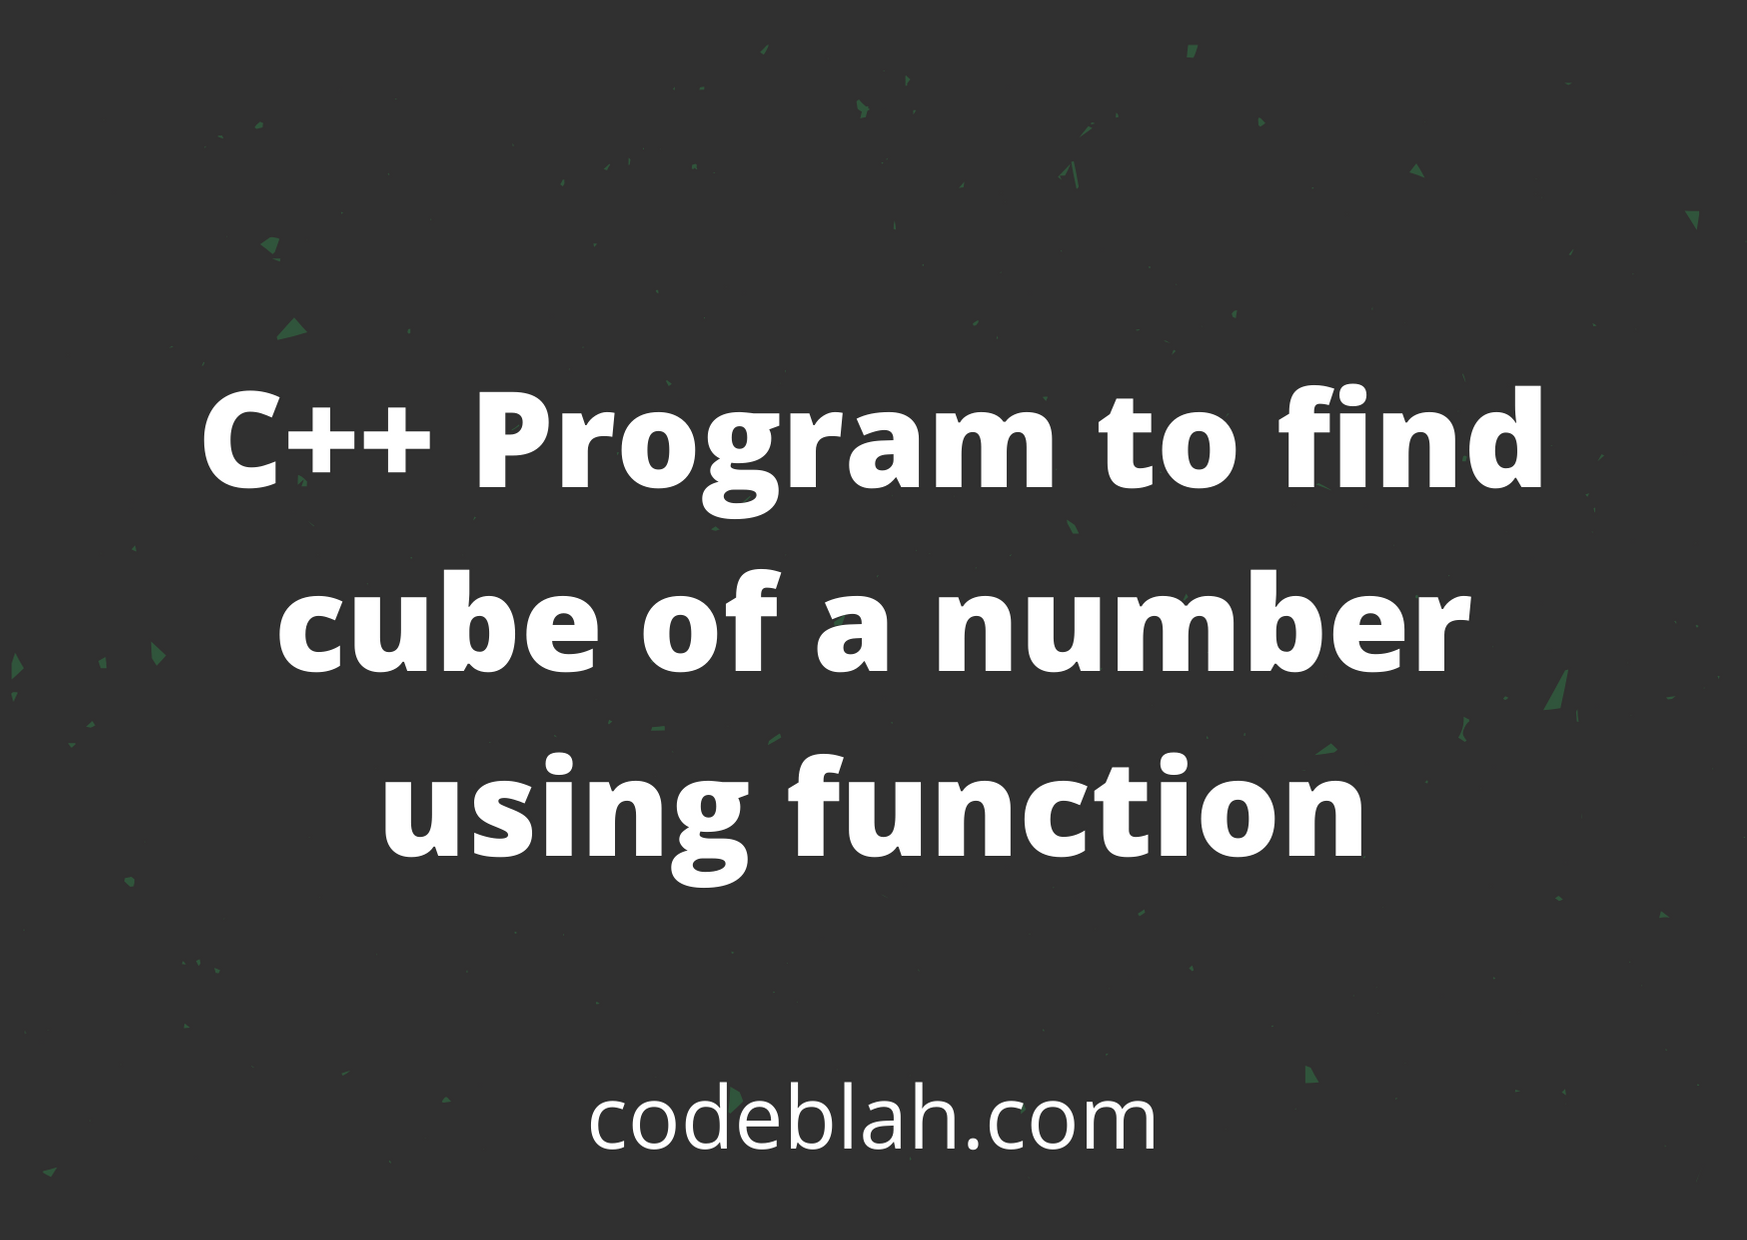 C++ Program to find cube of a number using function